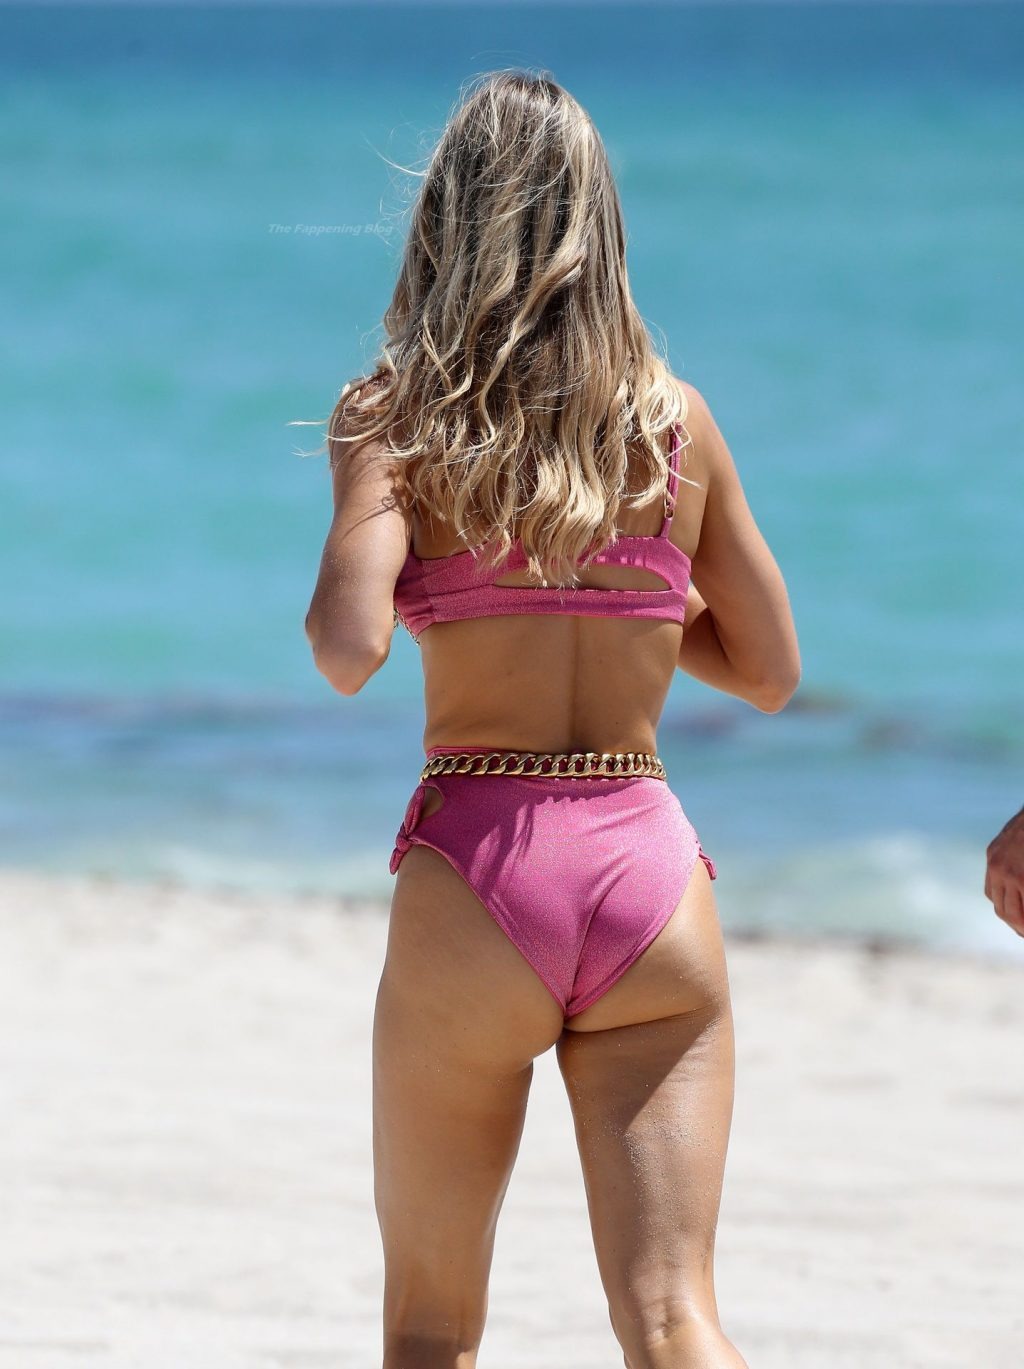 Joy Corrigan Shows Off Her Beach Body in Miami Beach (36 Photos)